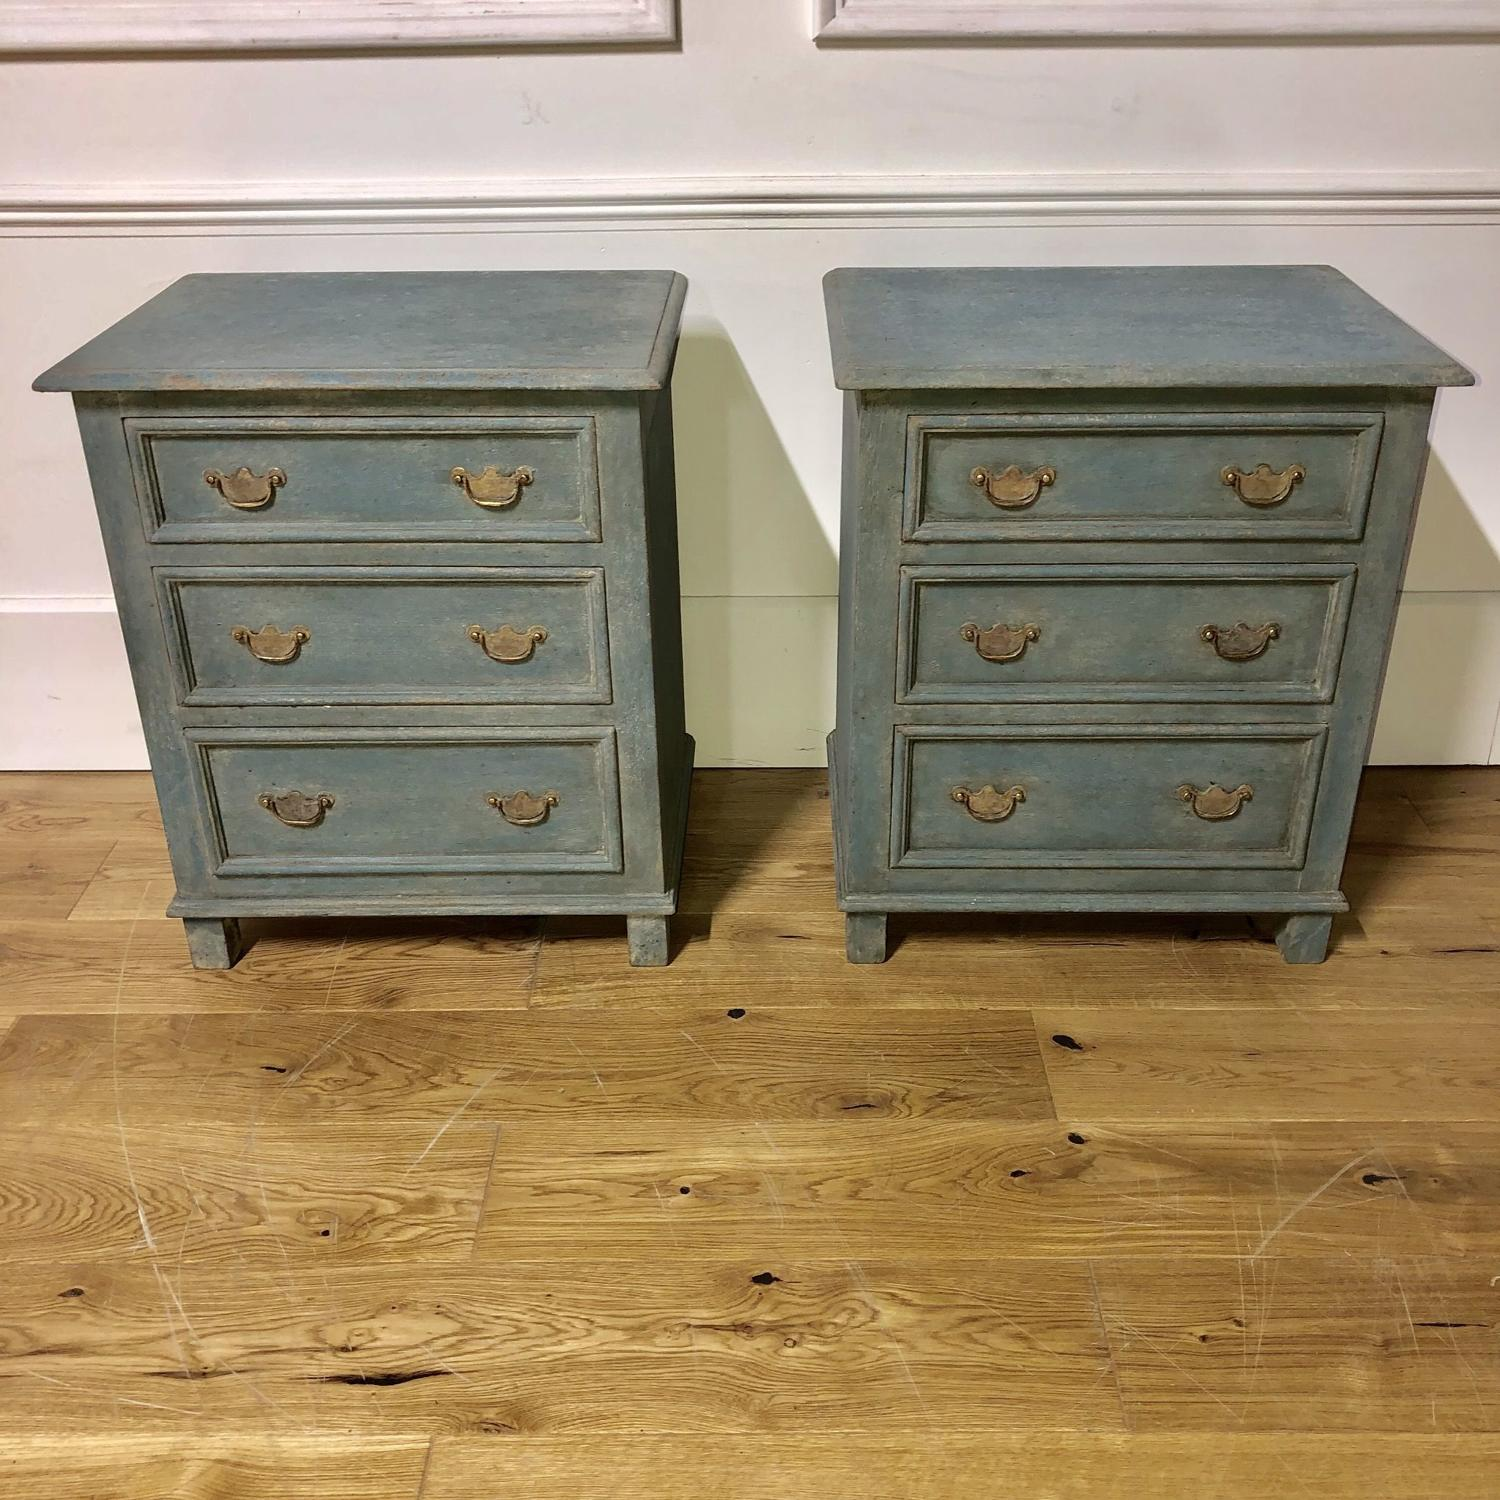 A pair of Petite Commodes